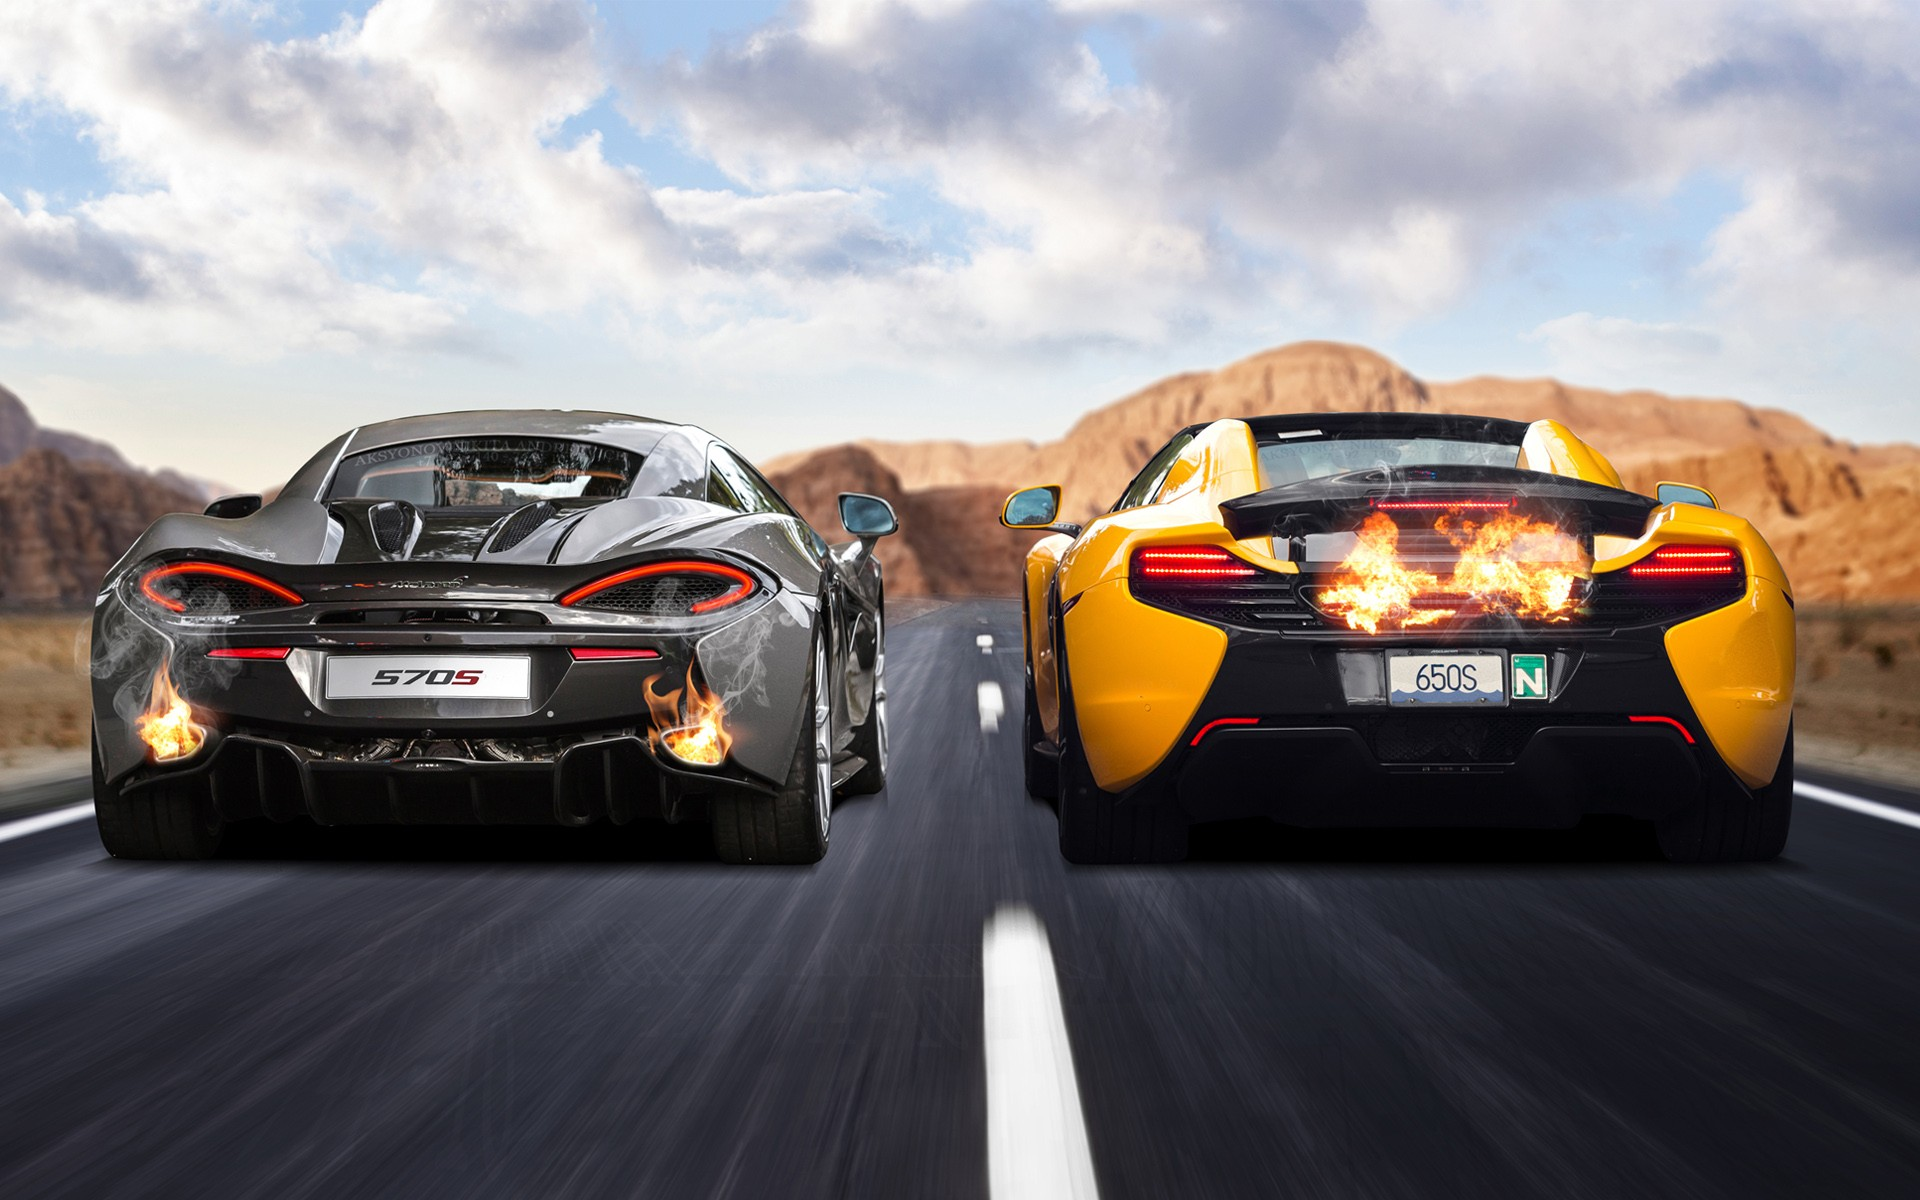 Mclaren 570s Amp 650s Wallpaper Hd Car Wallpapers Id 5953